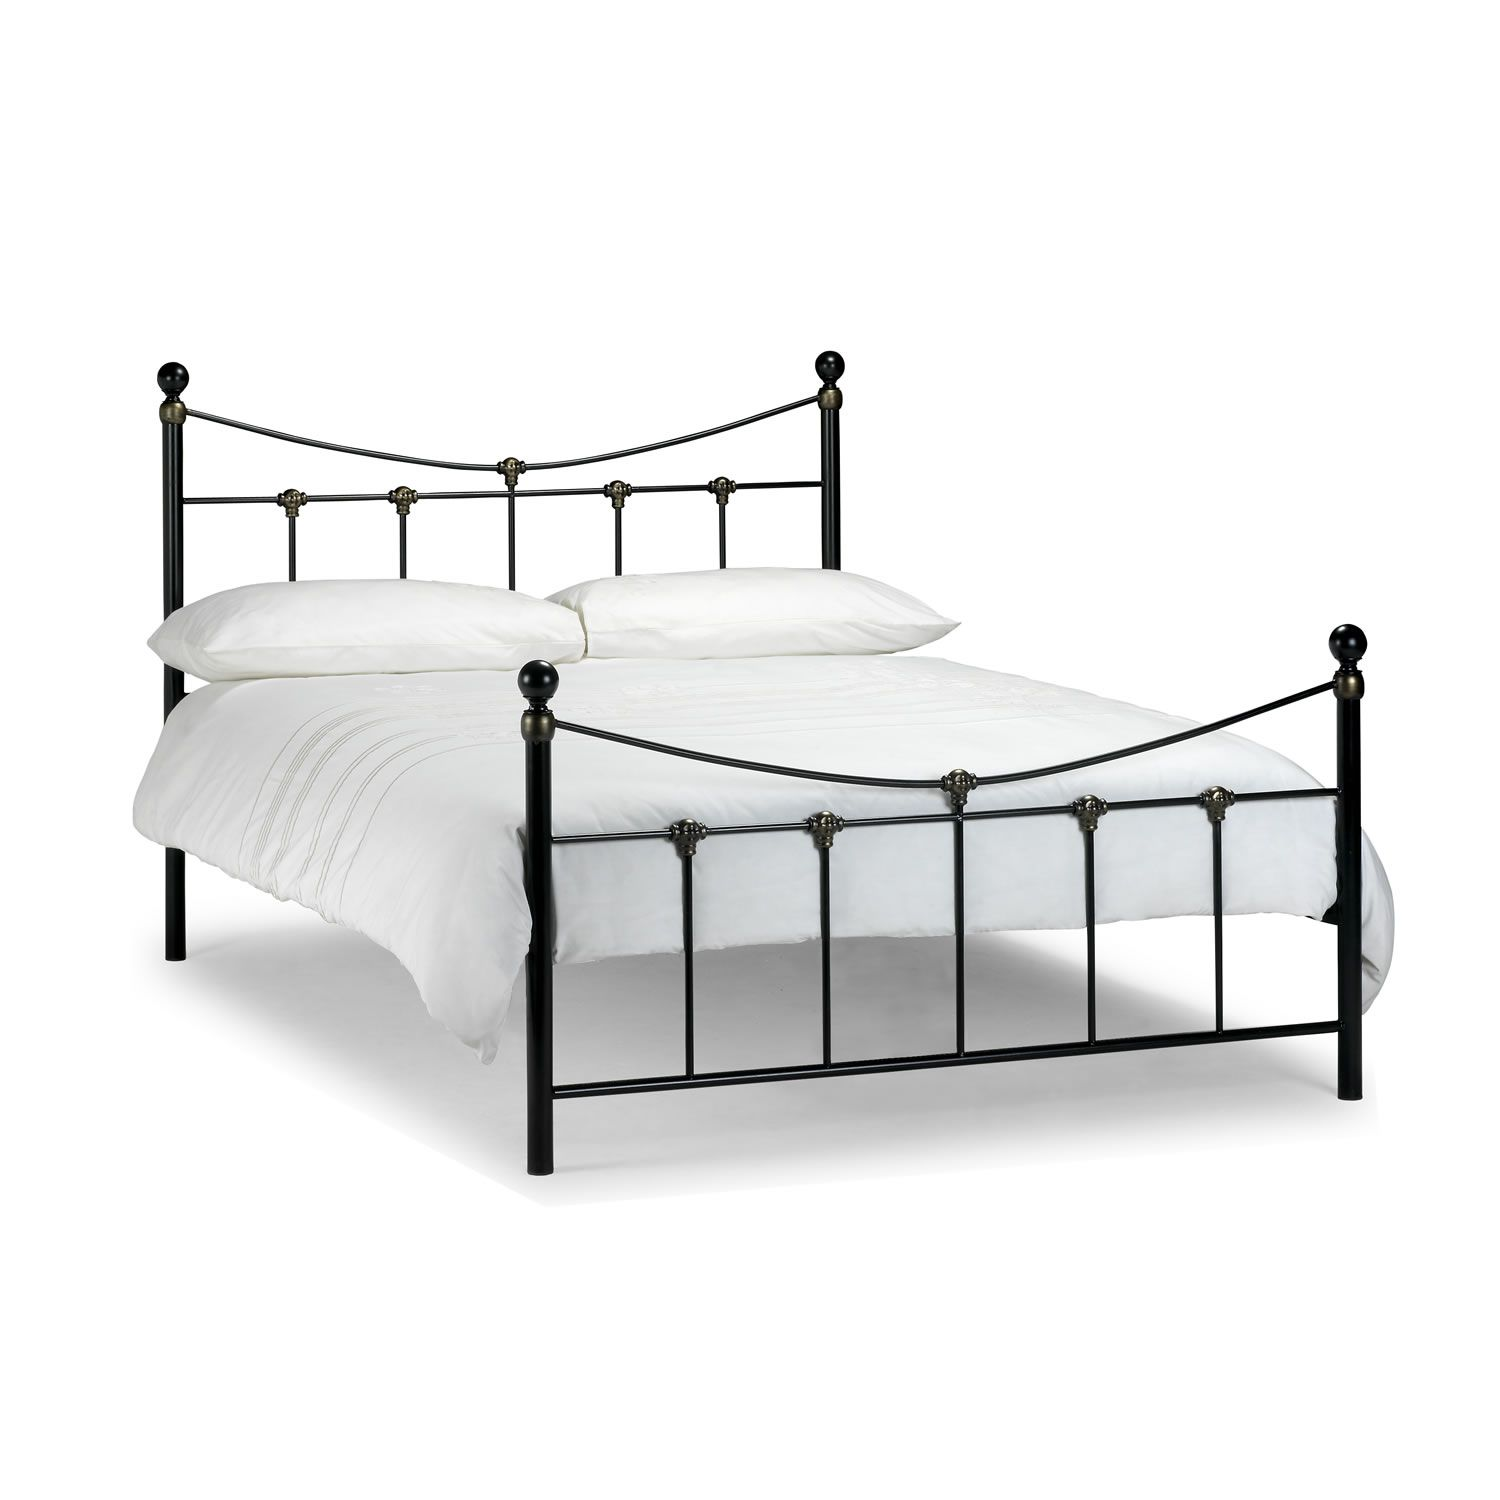 Best Bed Frames Iron Check Out Other Gallery Of Black Iron 400 x 300